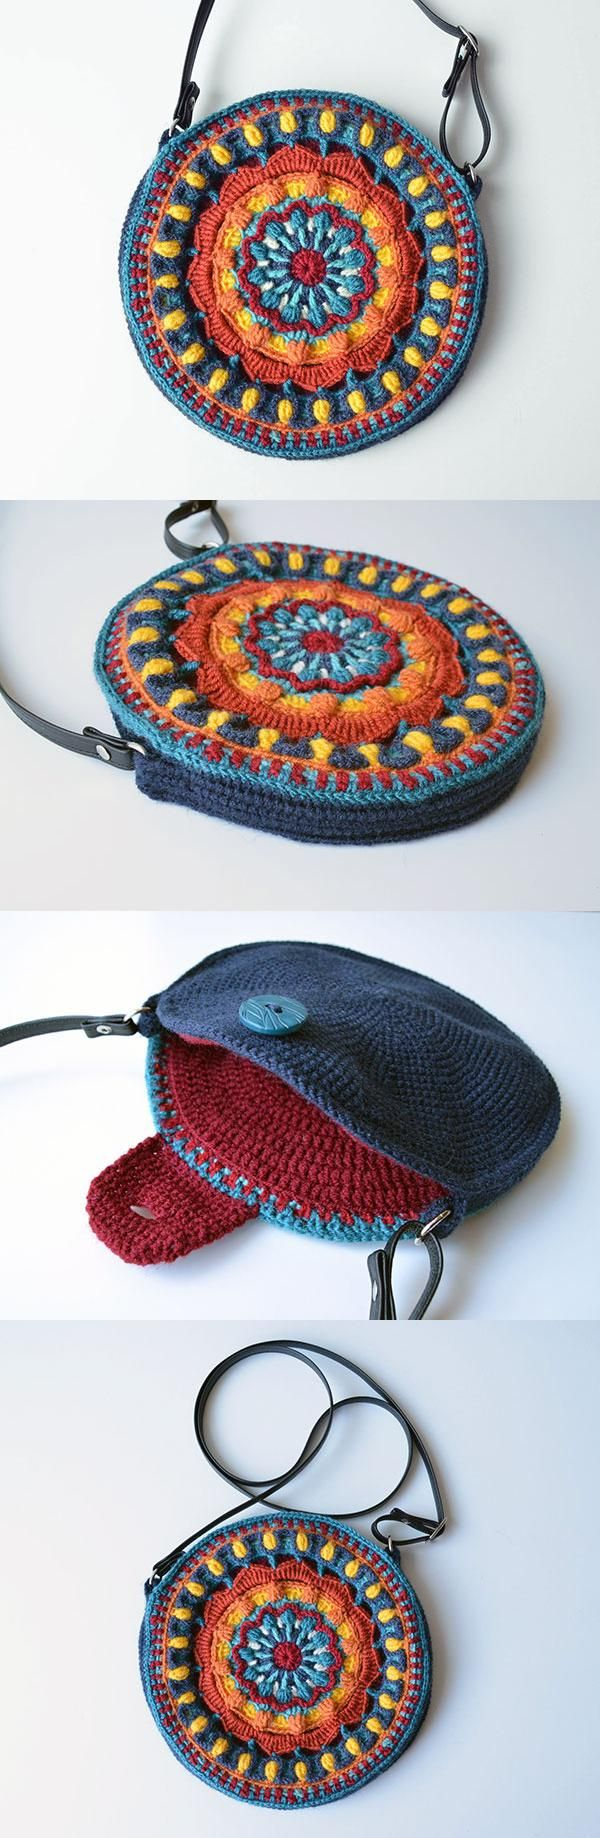 Kaleidoscope Mandala Bag Crochet Pattern